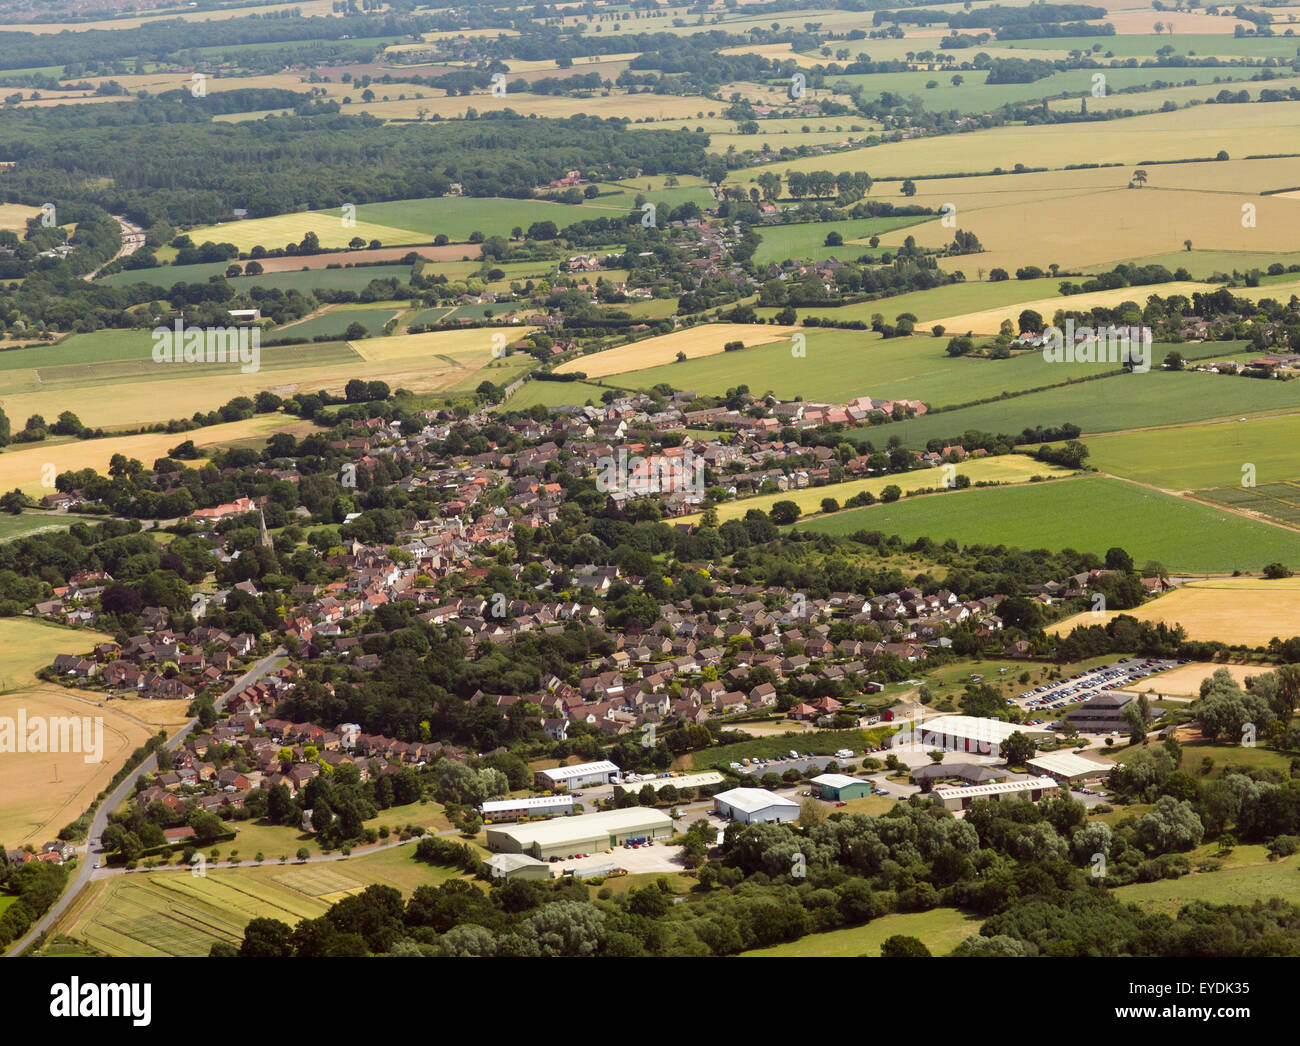 aerial view of Woolpit in Suffolk, UK - Stock Image